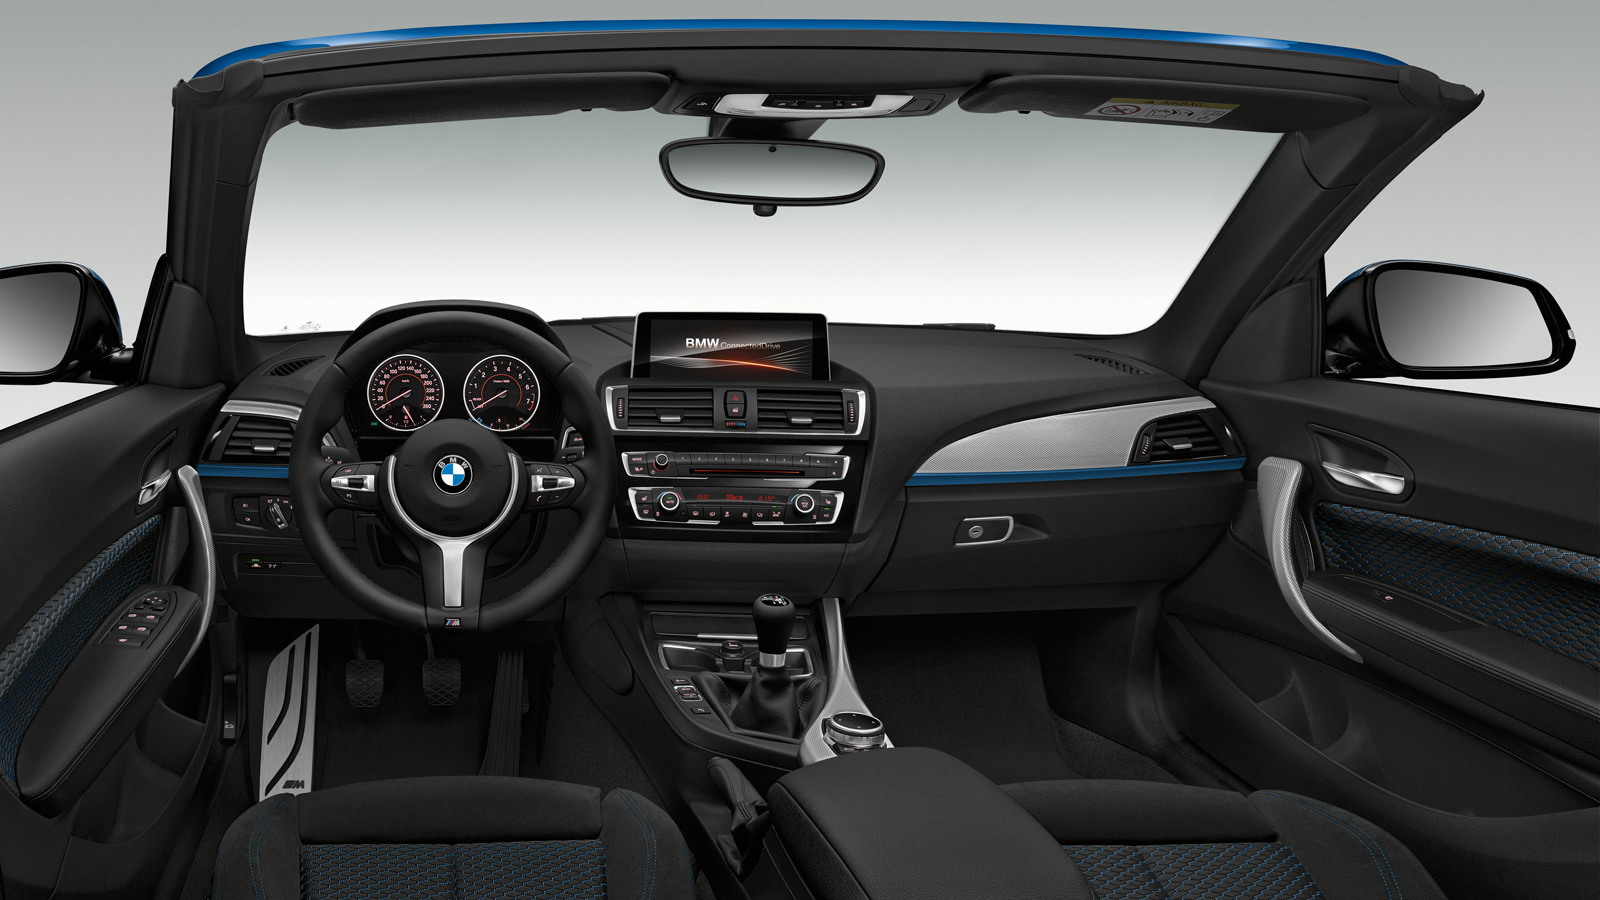 2015 BMW 2-Series Convertible equipped with M Sport package